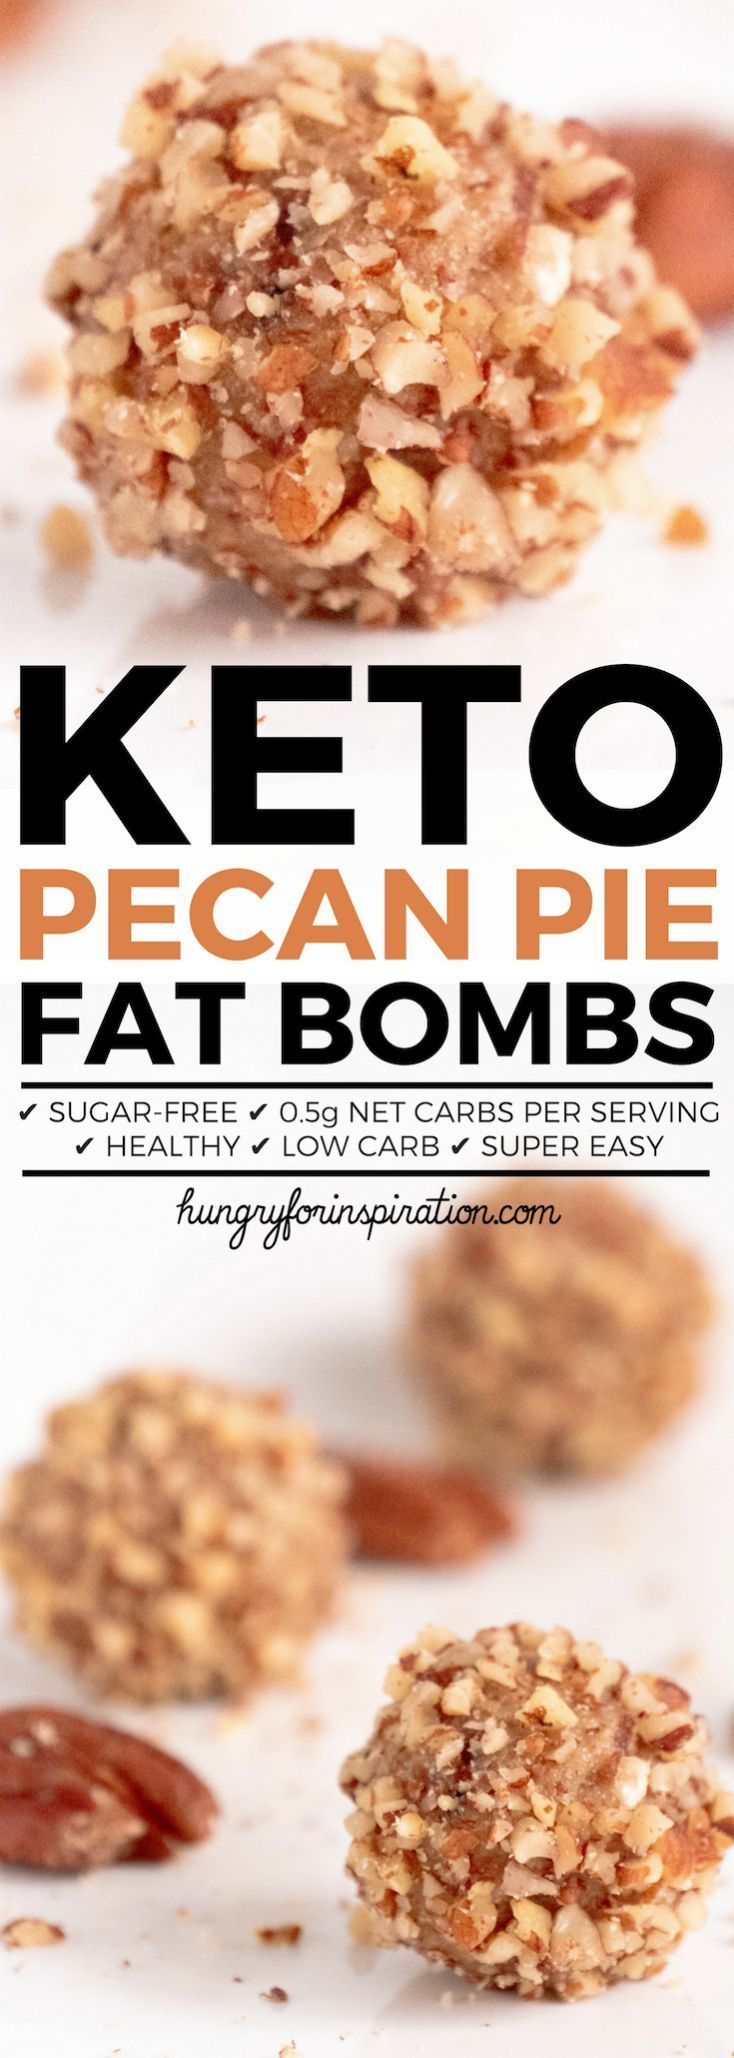 Heavenly Pecan Pie Keto Fat Bombs! Forget that you're on a diet with this easy Keto Dessert or Keto Snack that tastes like pecan pie! Incredibly delicious, easy to make and only 0.5g net carbs per serving! #keto #ketodessert #ketorecipes #ketodiet #ketogenic #ketogenicdiet #lowcarb #ketosnacks #lowcarbdiet #lowcarbrecipes #lowcarbdessert #lowcarbsnacks